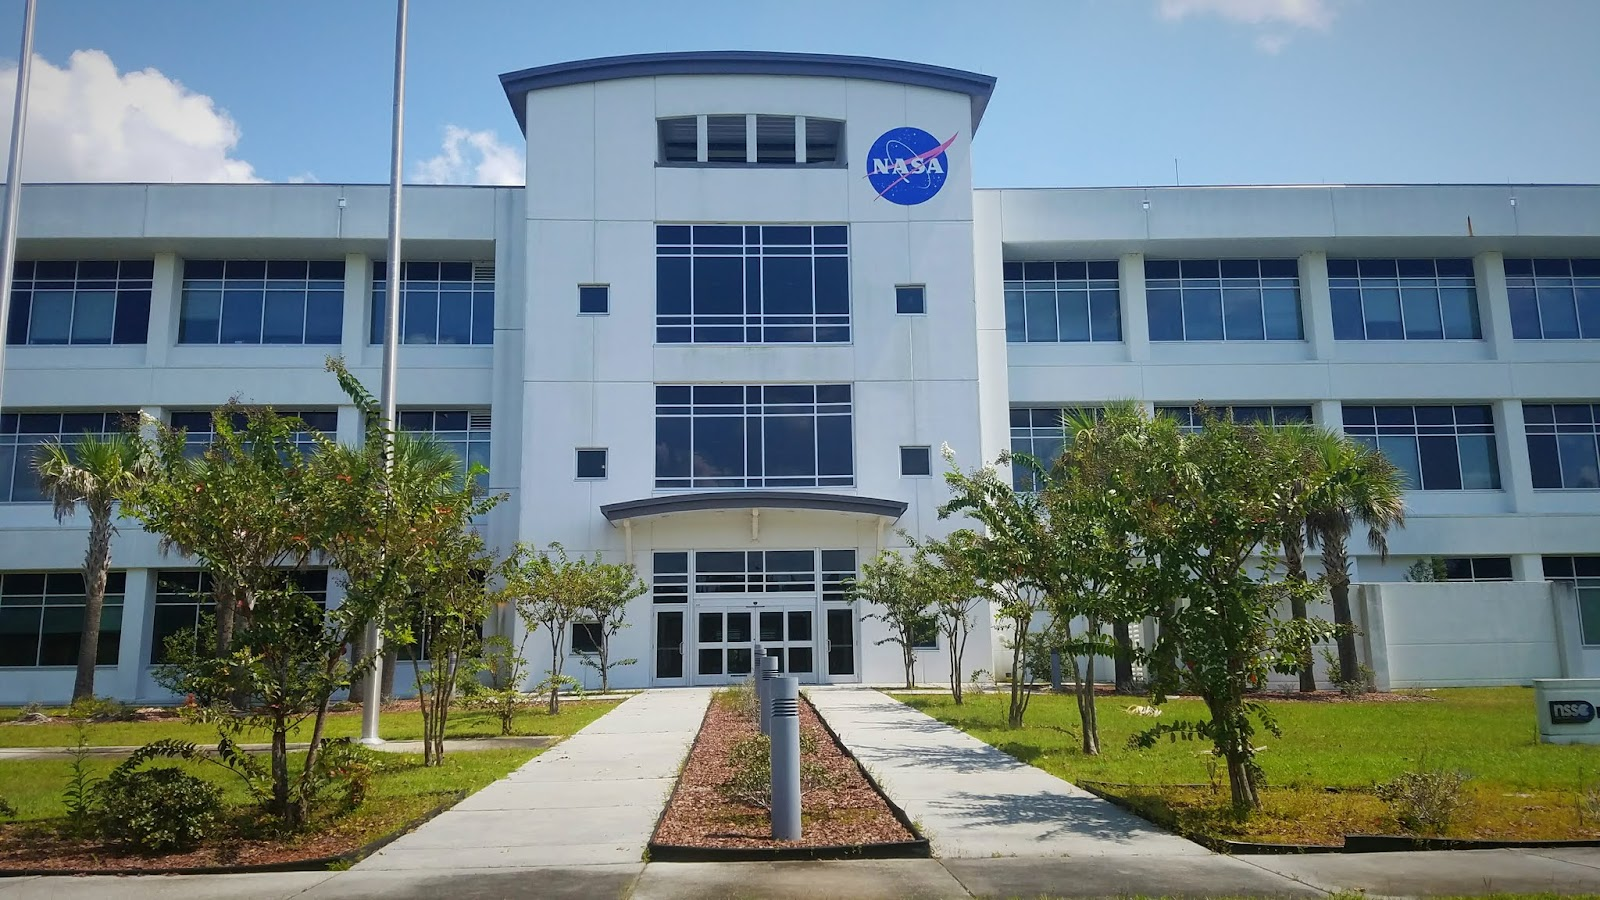 2017-09-07 - New Orleans - Michoud Assembly Facility